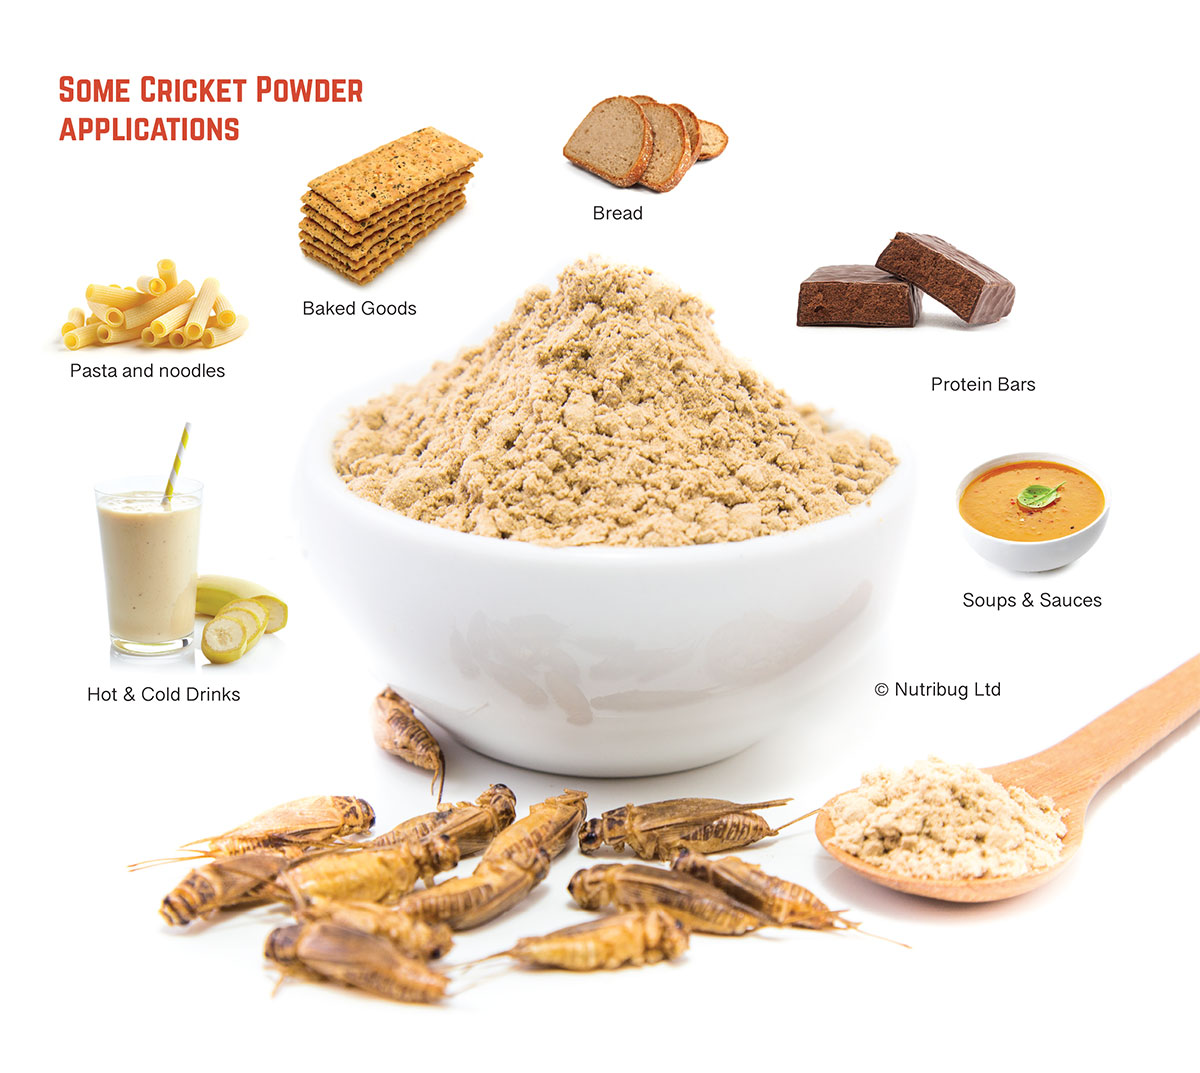 cricket powder applications